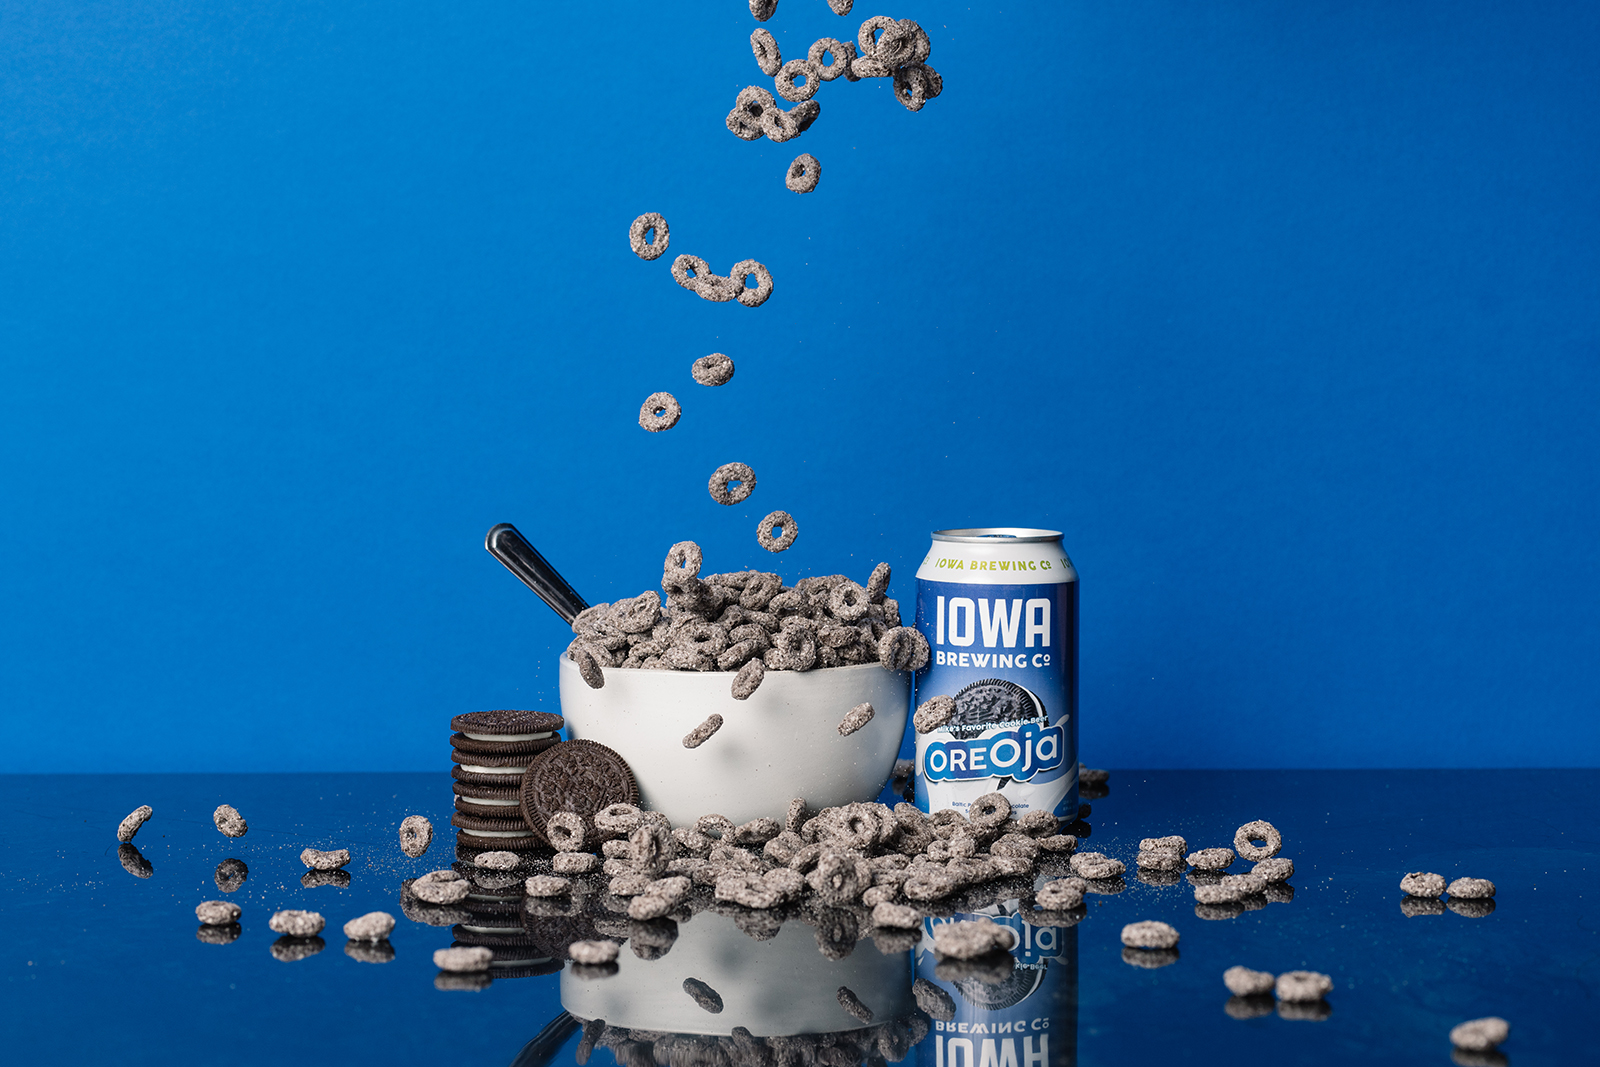 Iowa Brewing Company Oreja Craft Beer Commercial Photography Cedar Rapids Iowa